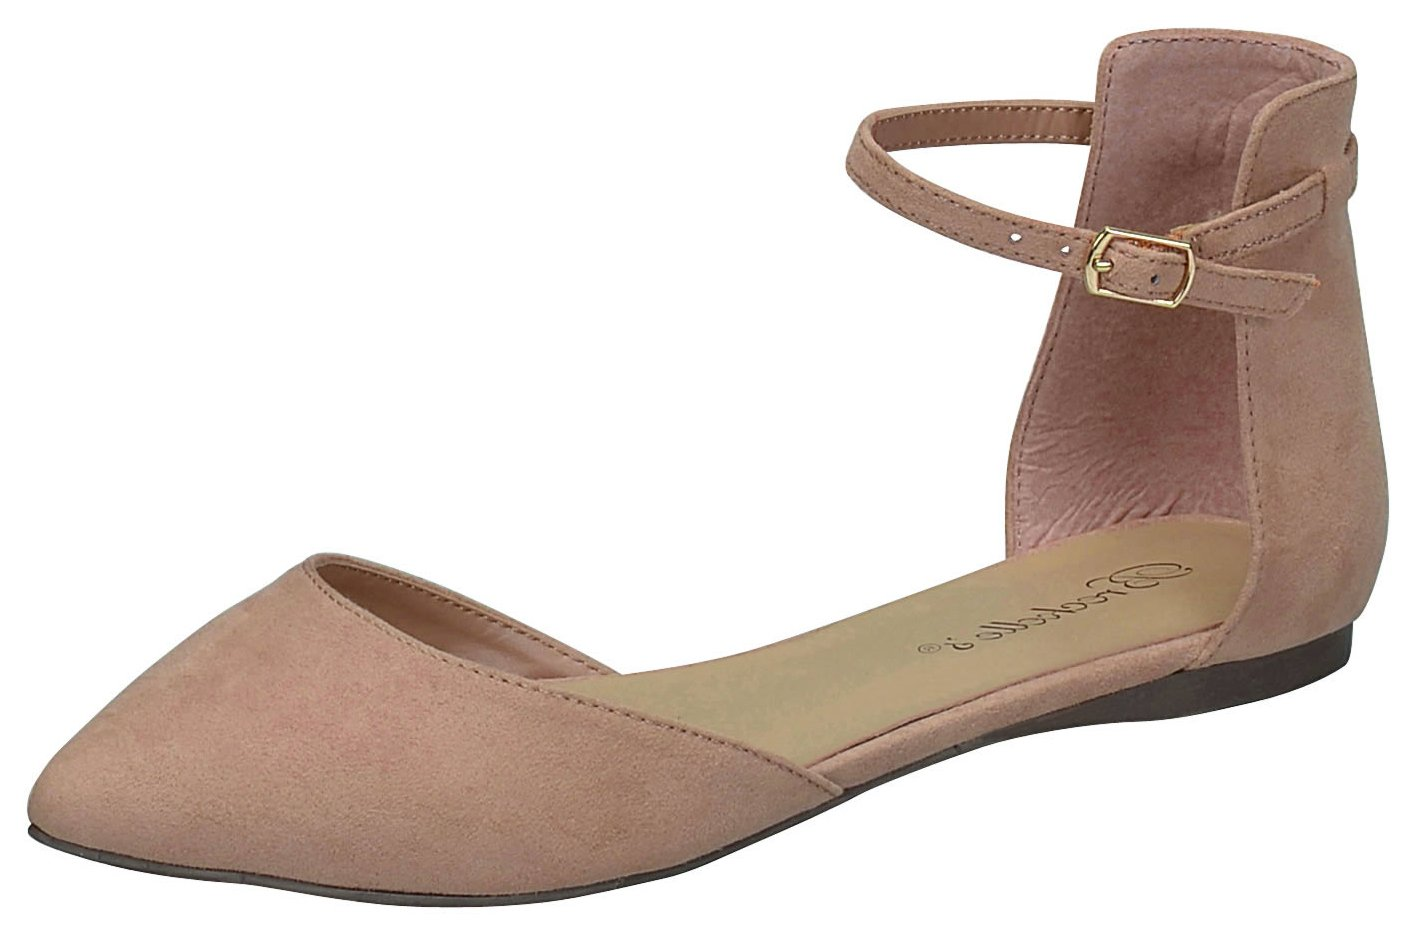 Breckelle's Women's d'Orsay Pointy Toe Ankle Strap Buckle Ballet Flat B01N4R2OR2 7 B(M) US|Natural